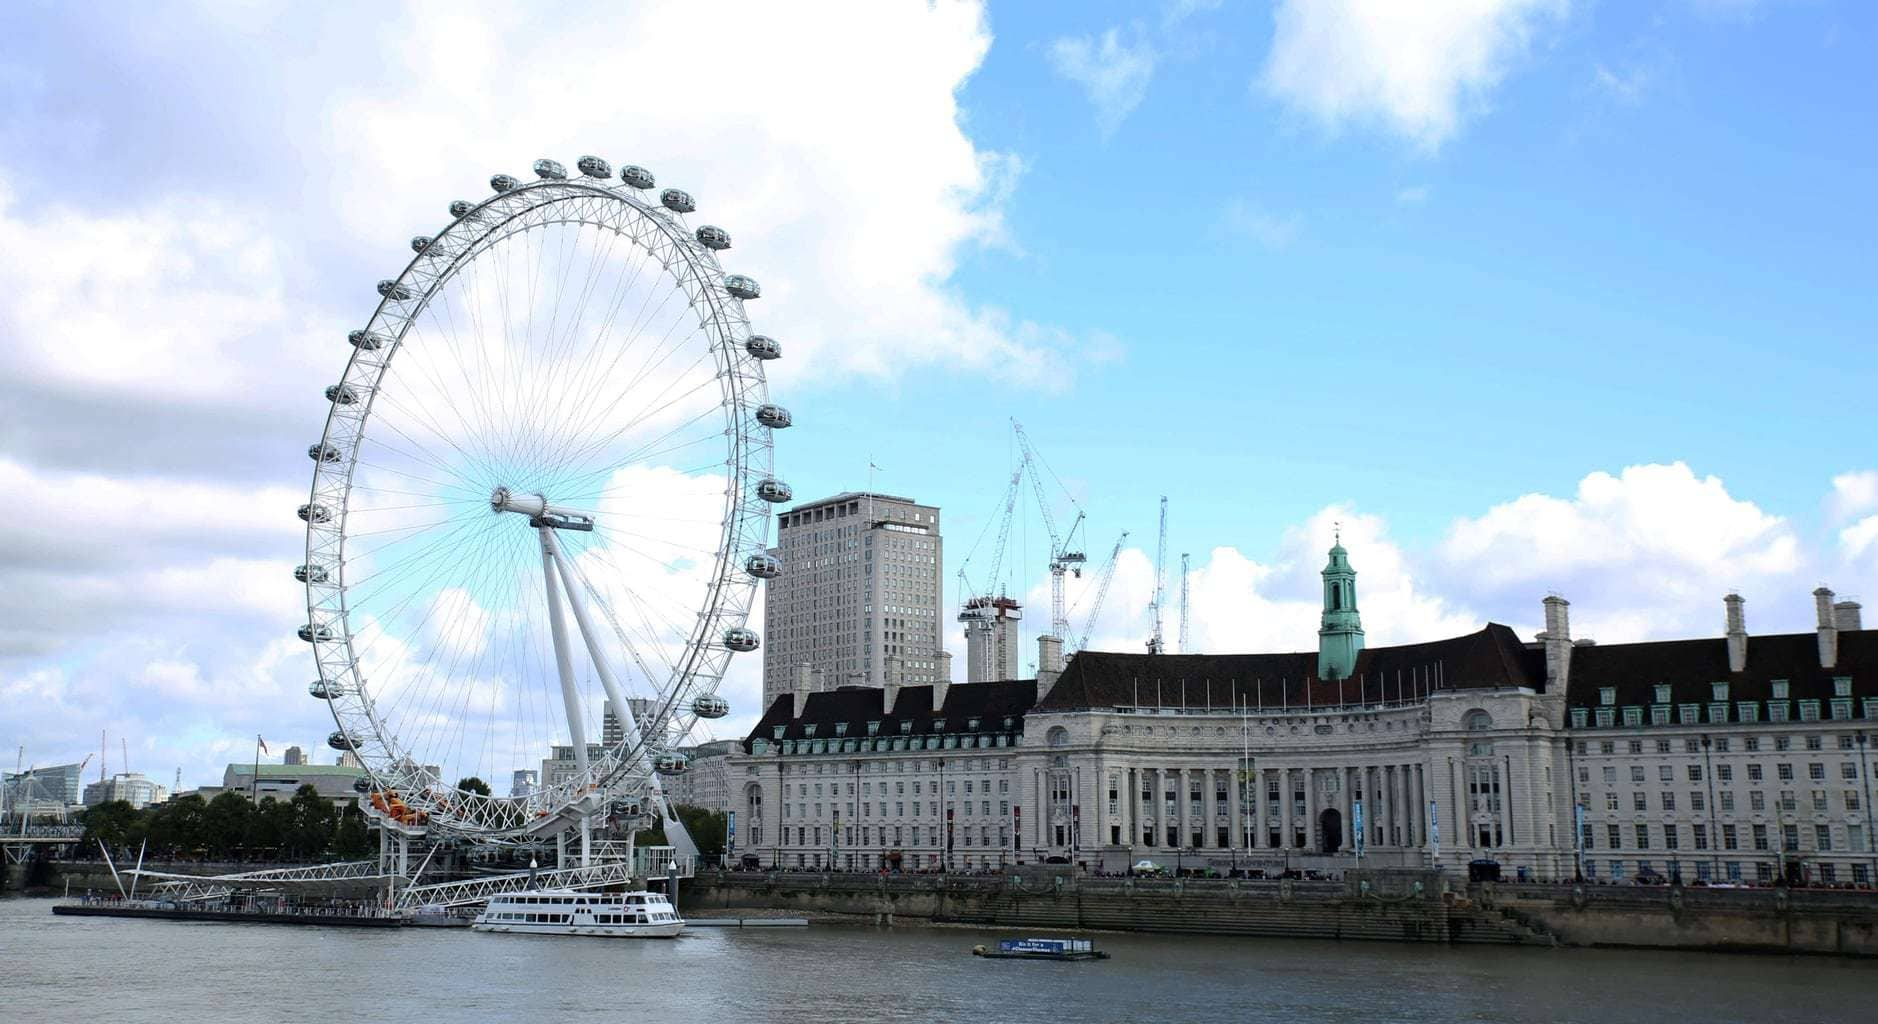 I took this shot from Westminster bridge of the London Eye. By Dpi Photography.